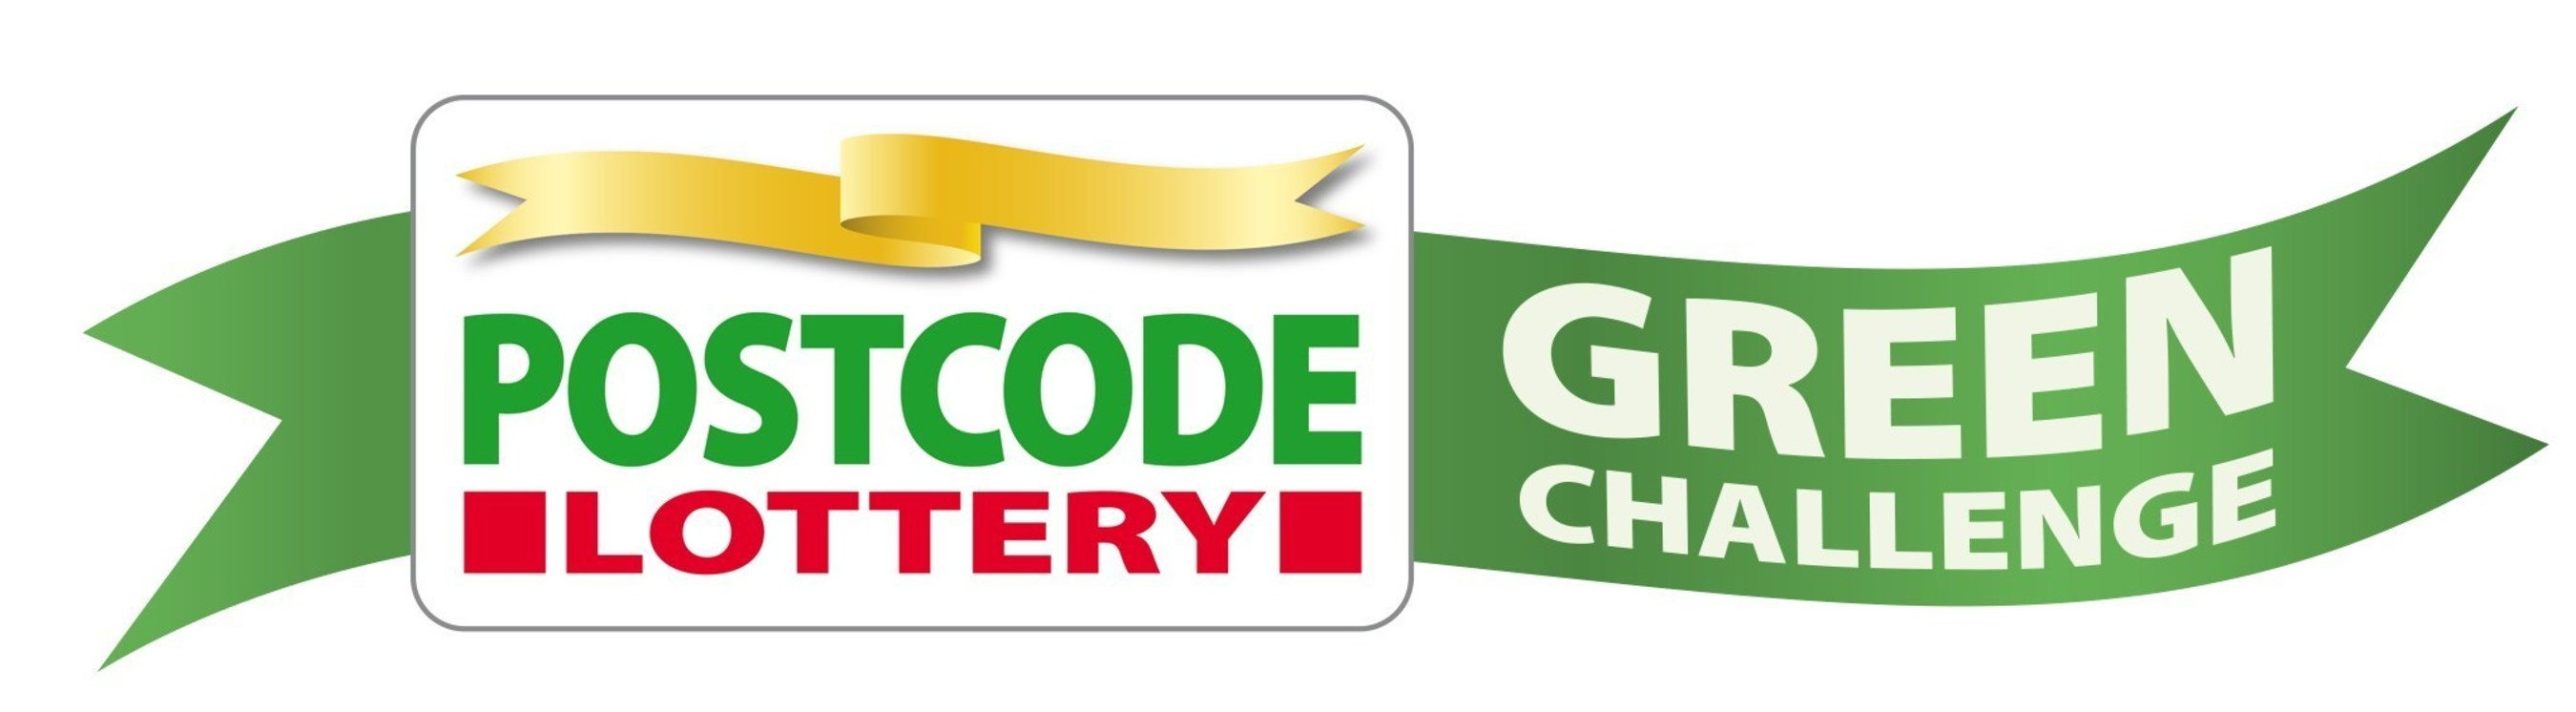 Dutch Postcode Lottery Announces 25 Nominees for 2015 Postcode Lottery Green Challenge